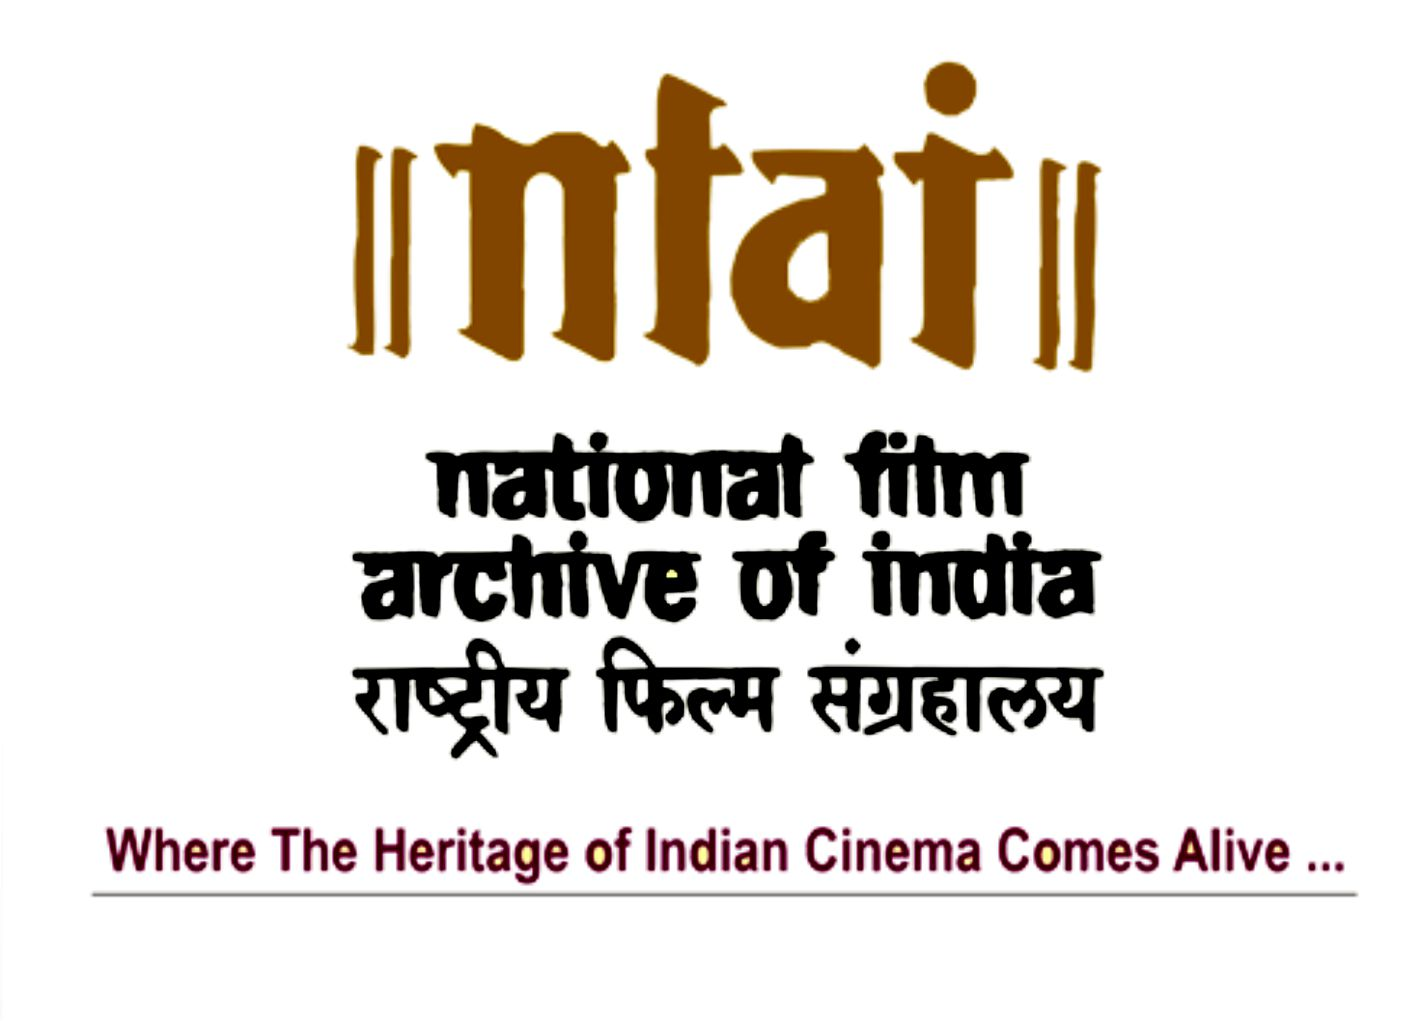 Film Appreciation Course In Marathi Medium at NFAI